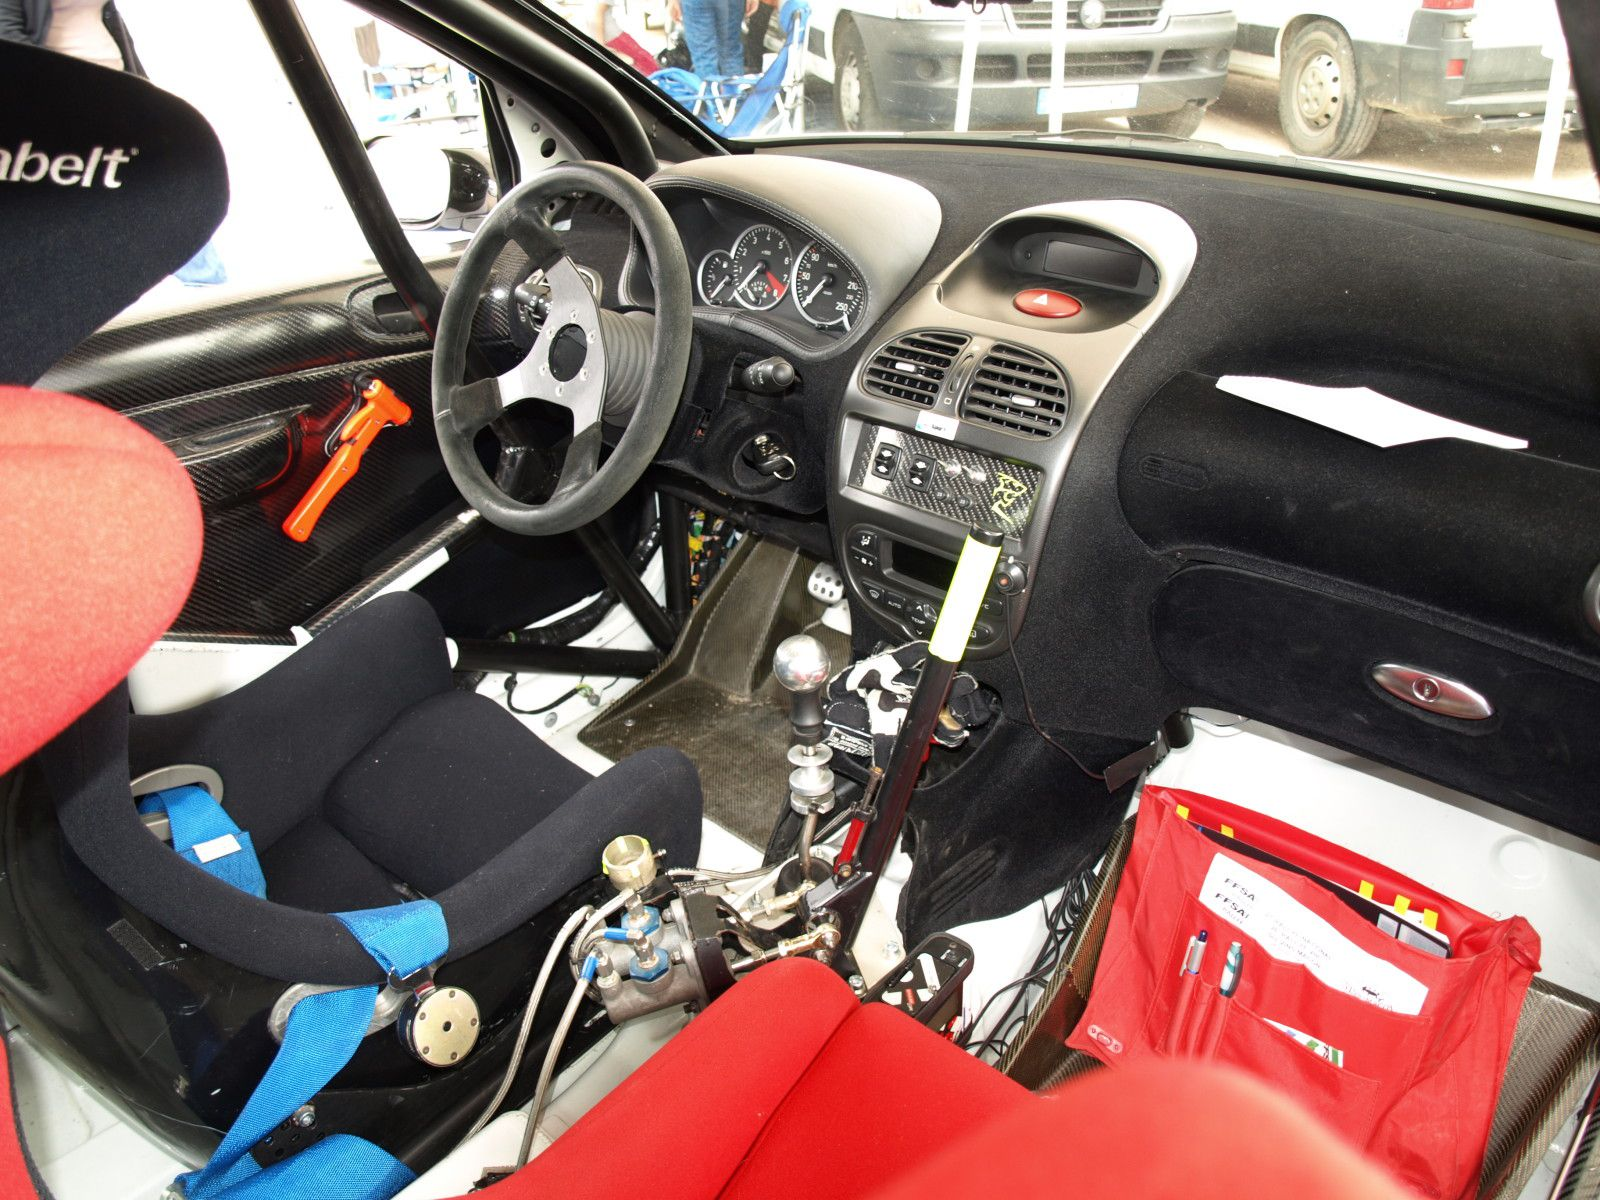 Rallye des vins de macon 2010 coulouaventure for Interieur wrc